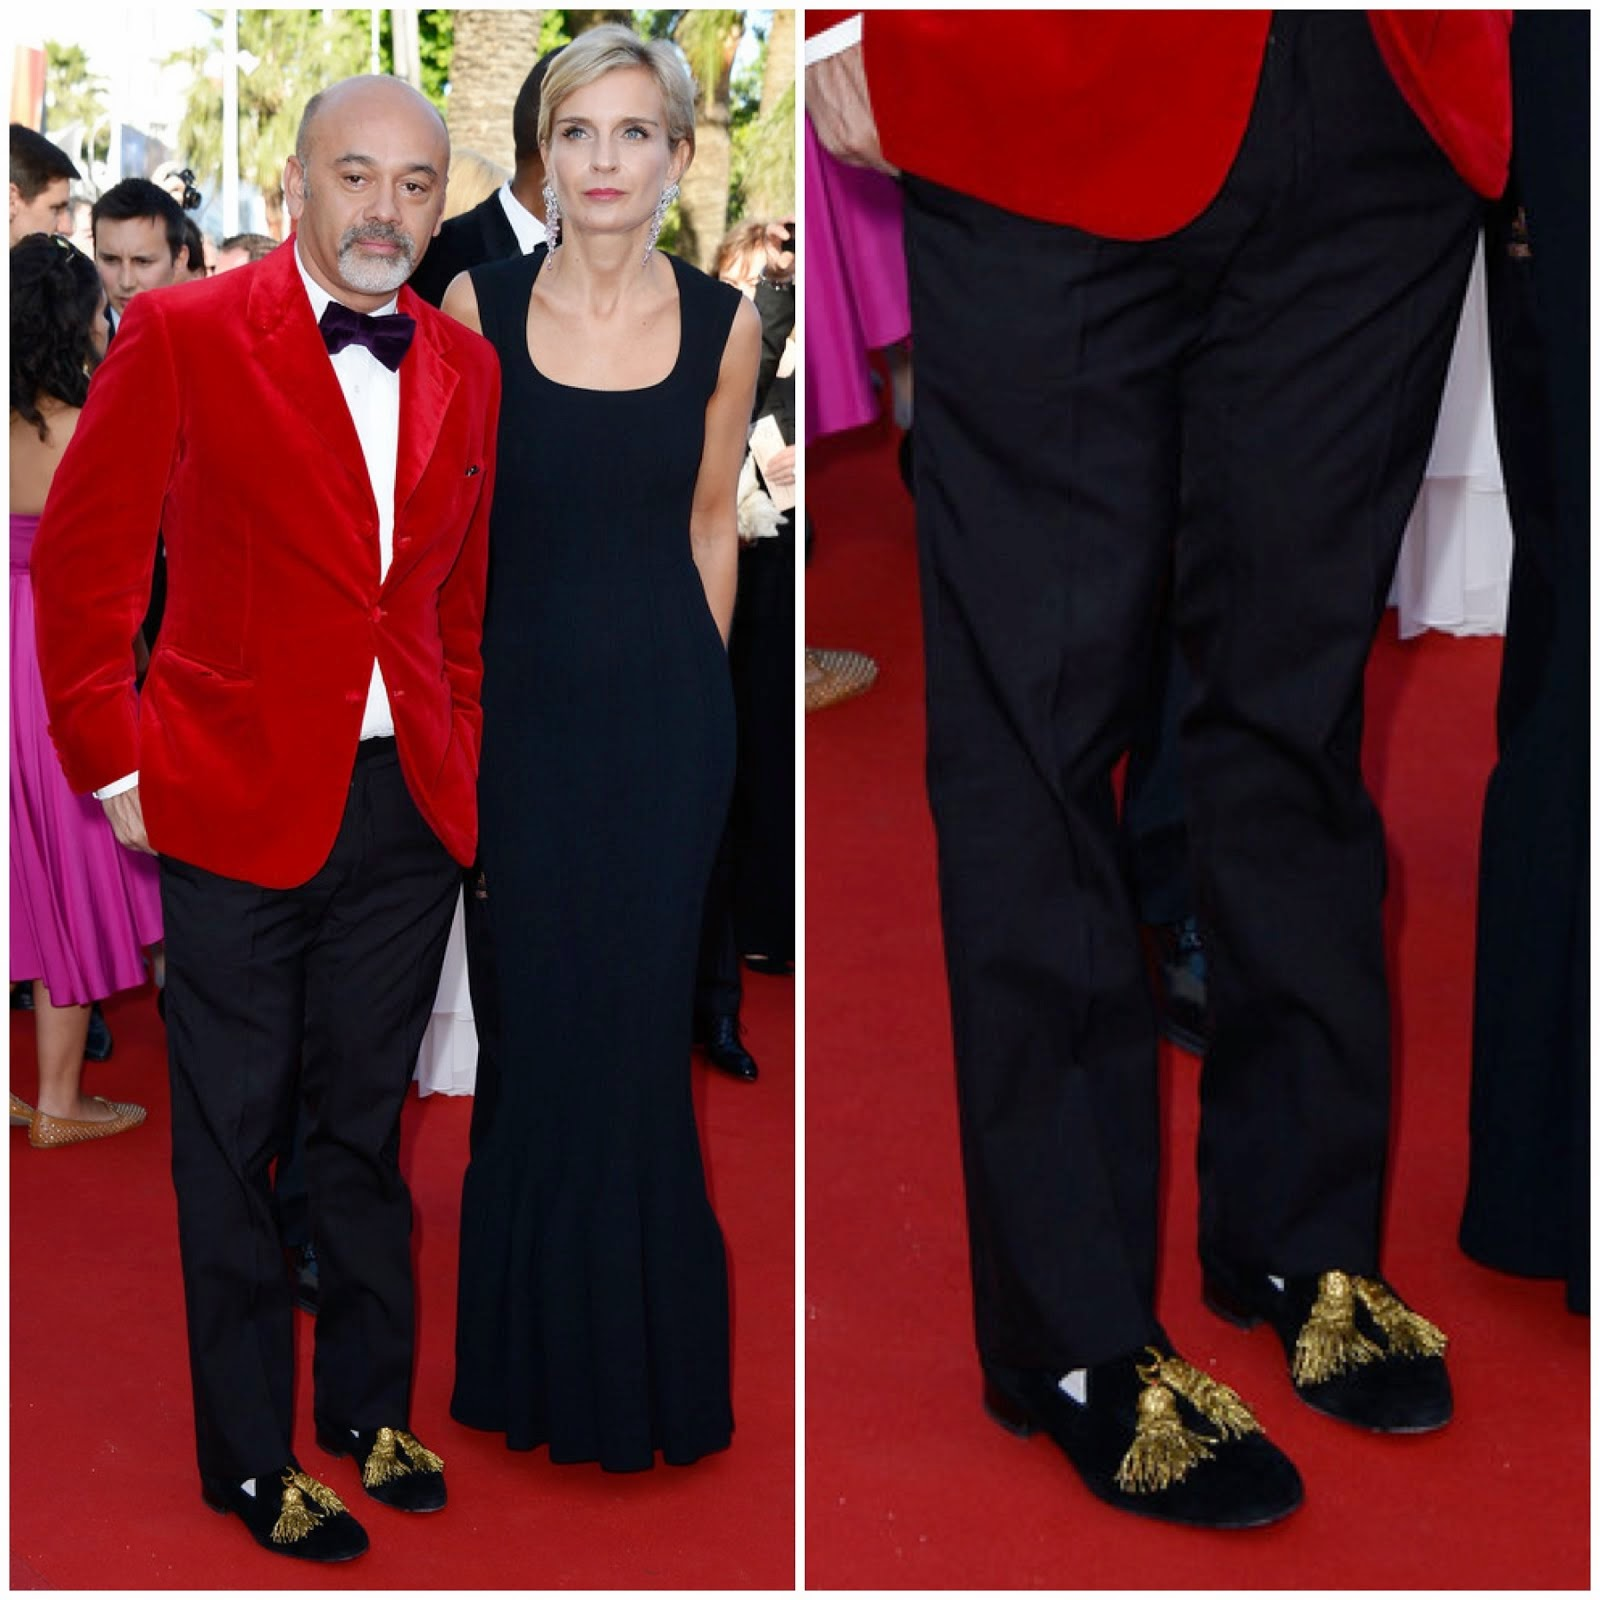 00O00 Menswear Blog: Christian Louboutin (@LouboutinWorld) at Premiere of 'Le Passe' - The 66th Annual Cannes Film Festival